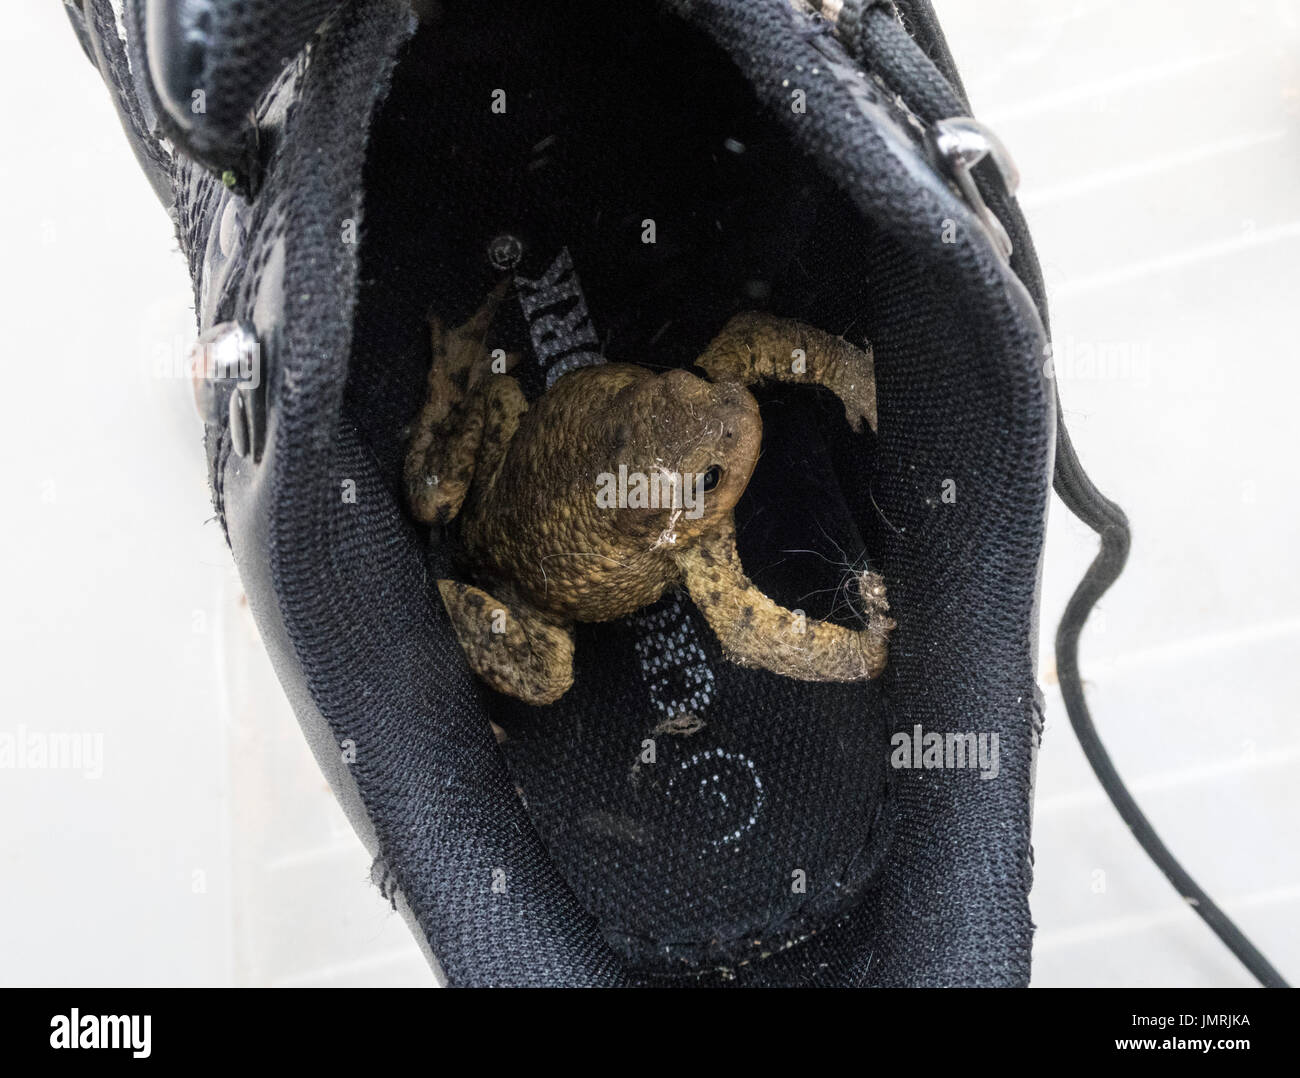 A common toad which has set up home in a gardening boot. - Stock Image